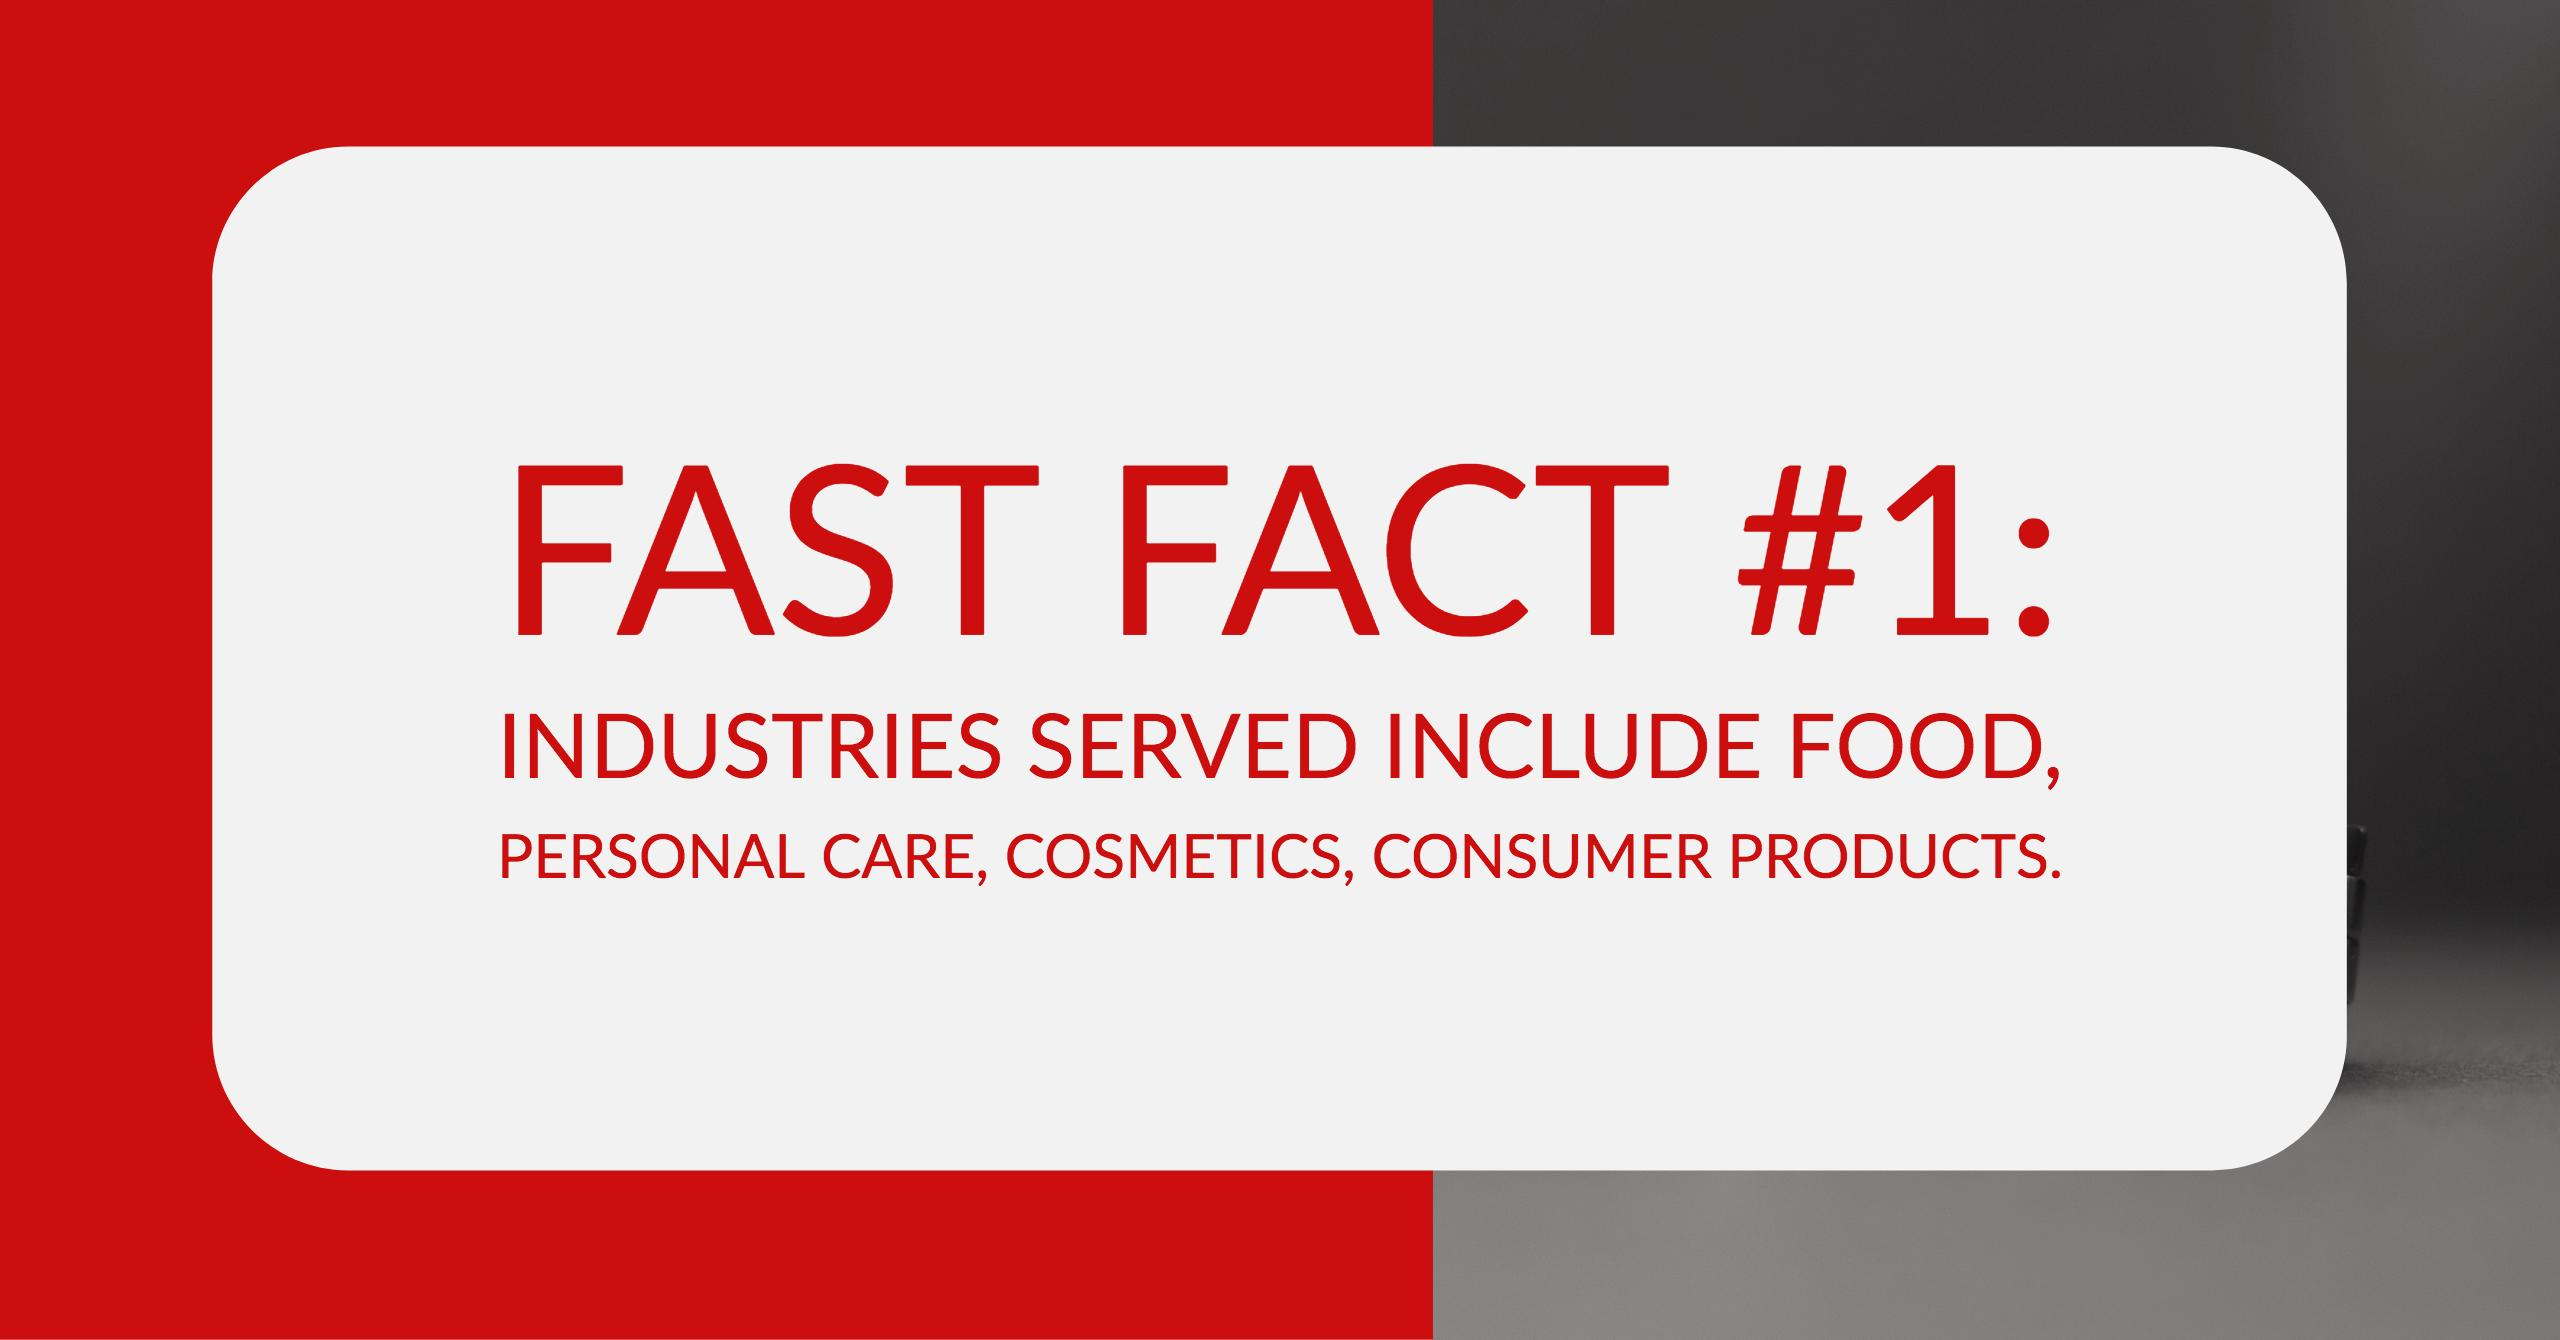 Fast Facts about Automatic Cartoning at Repack Canada